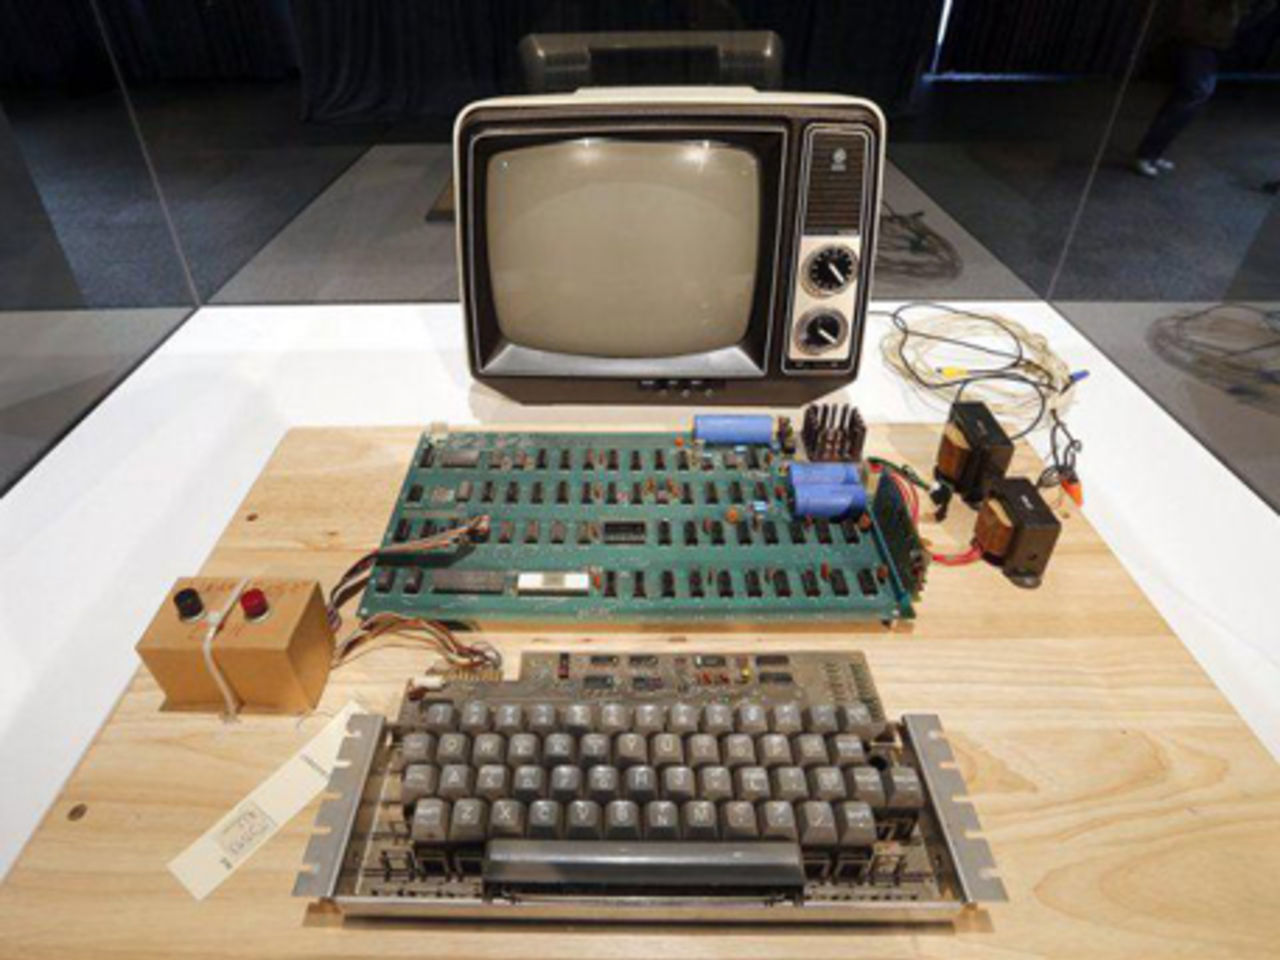 case 1 apple computer research how apple managed to reinvent itself over the years Apple computer: research how apple managed to reinvent itself over the years when it comes to innovation there are few companies that can stand next to apple love them or hate them no one can deny their impact on the technology field.